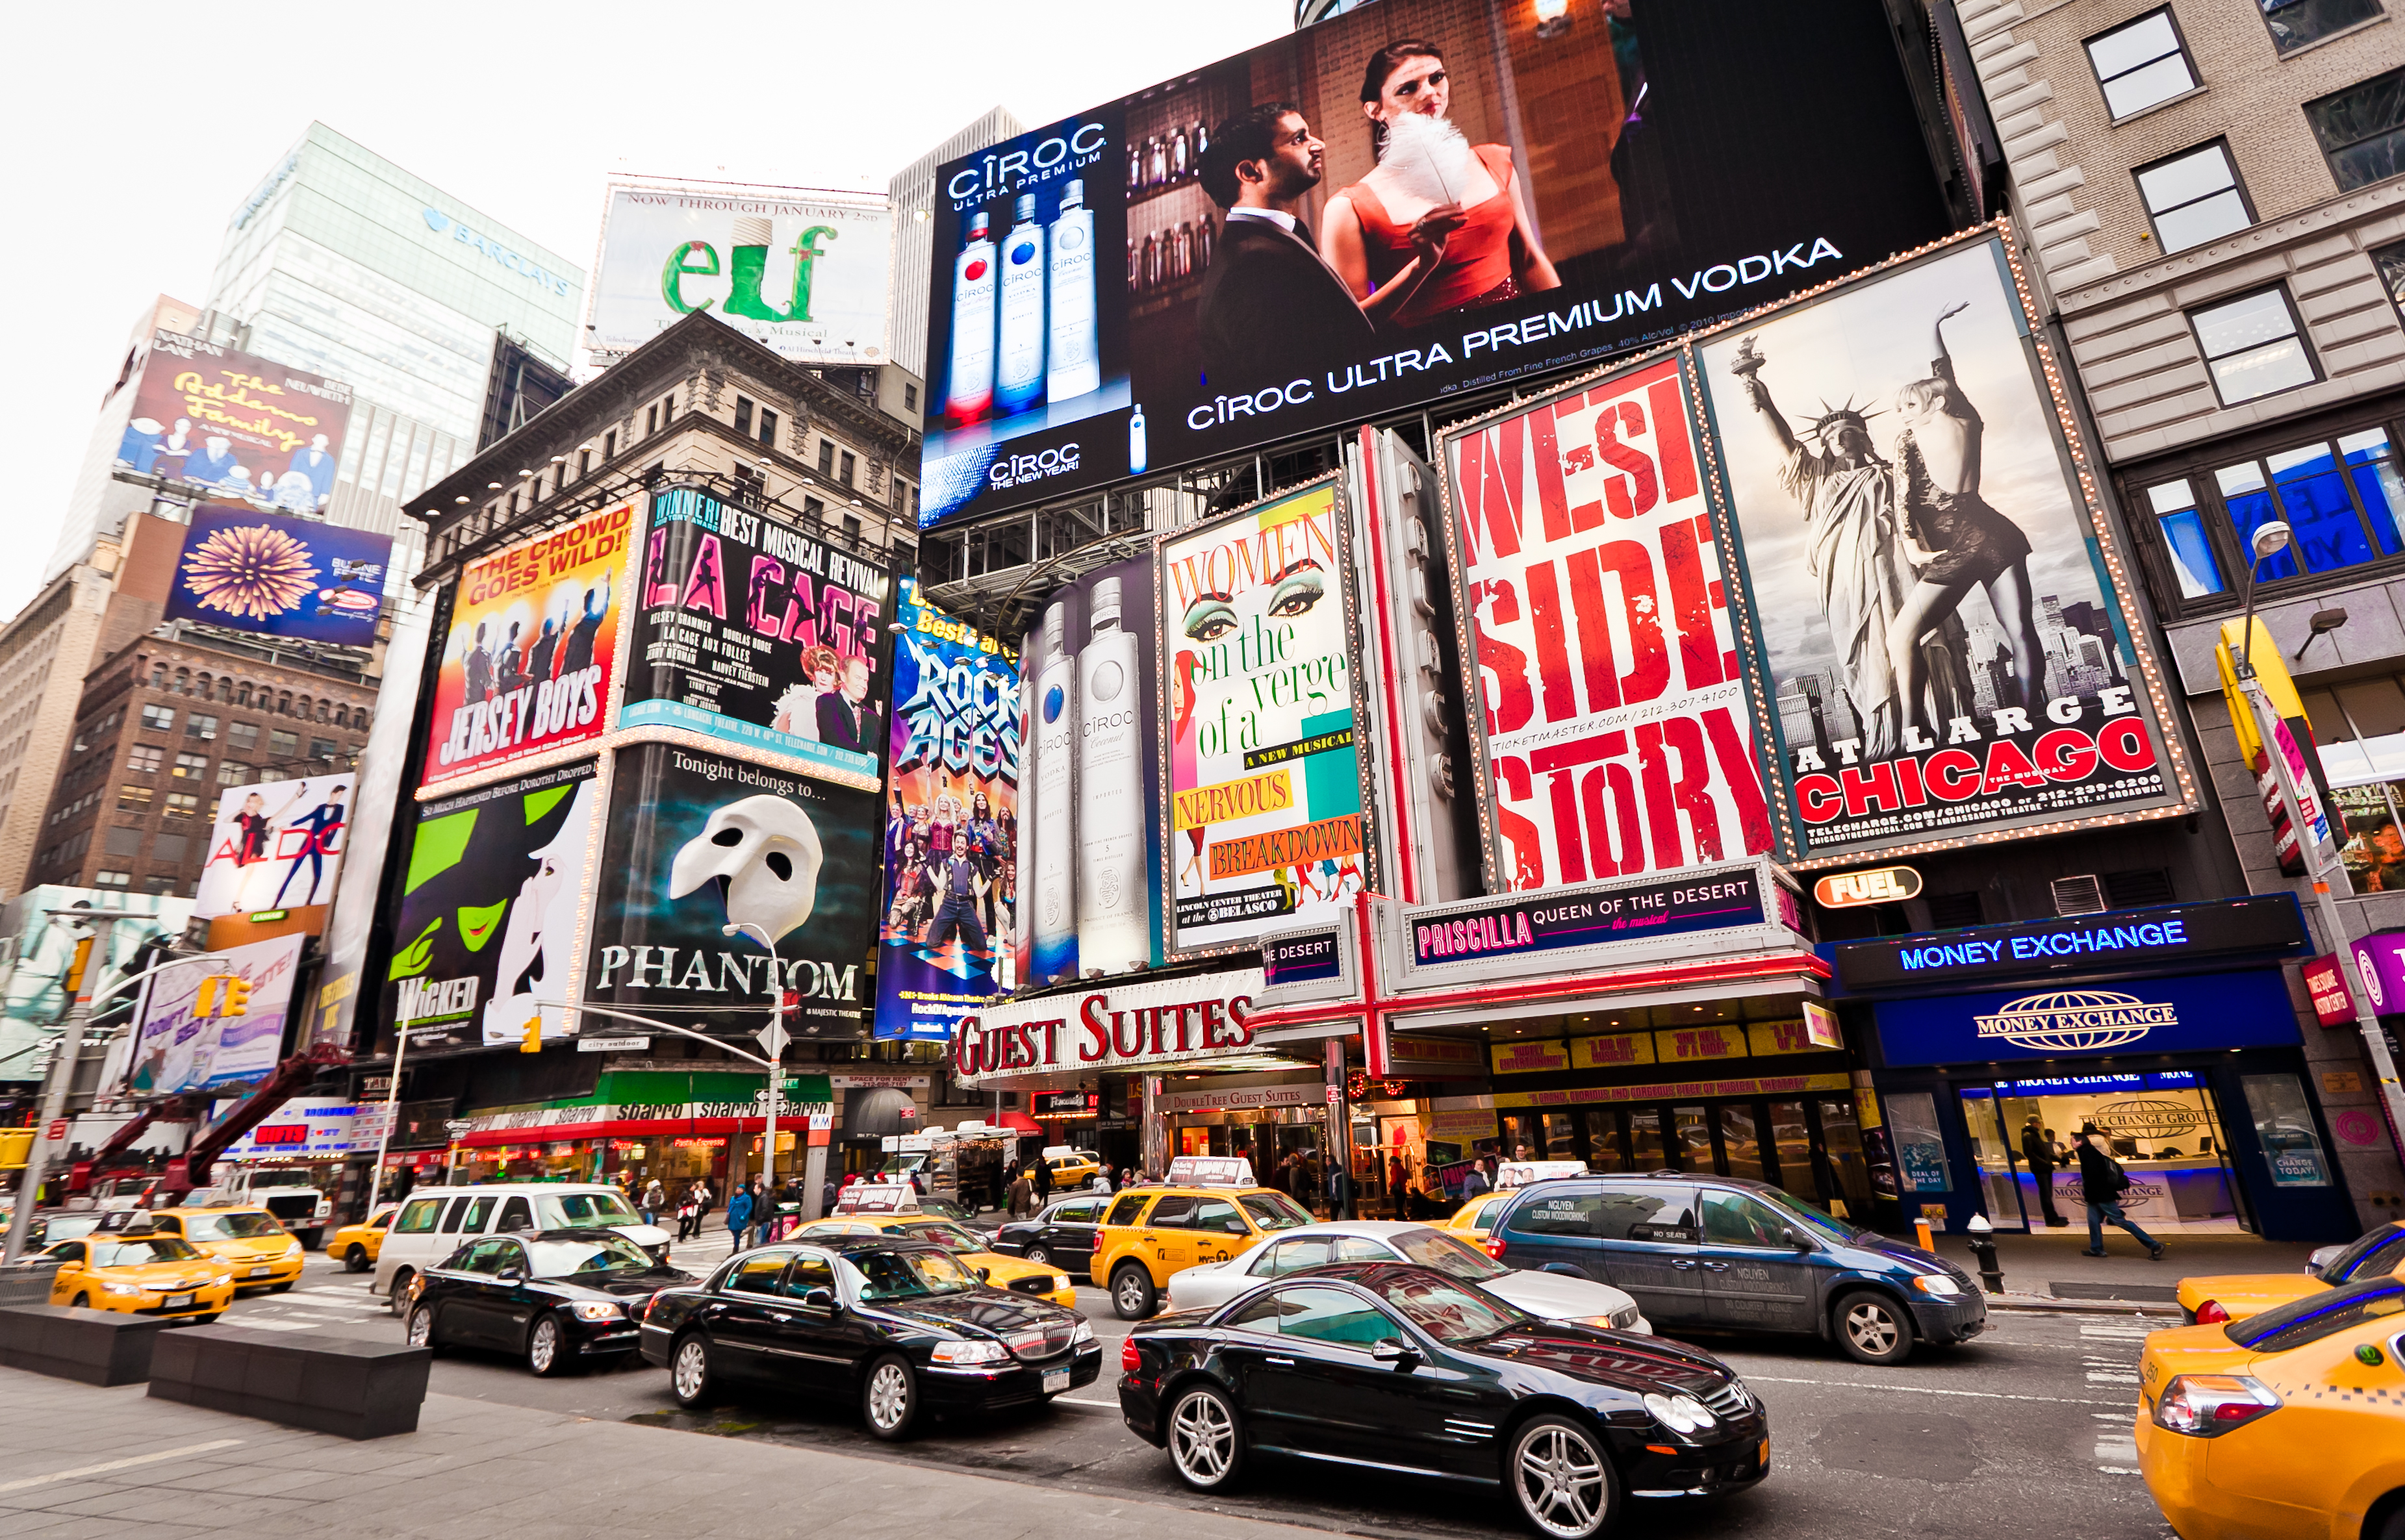 A street view of New York City's Theater District with many billboards of Broadway shows and a busy street filled with cars.